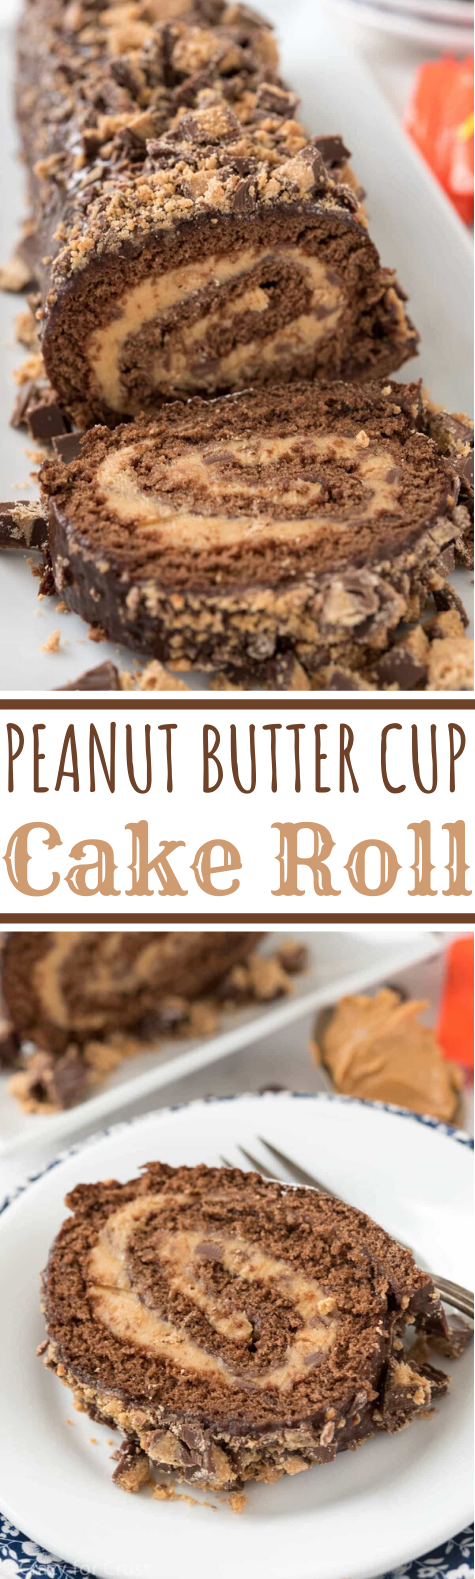 Peanut Butter Cup Cake Roll #cake #desserts #baking #peanutbutter #chocolate